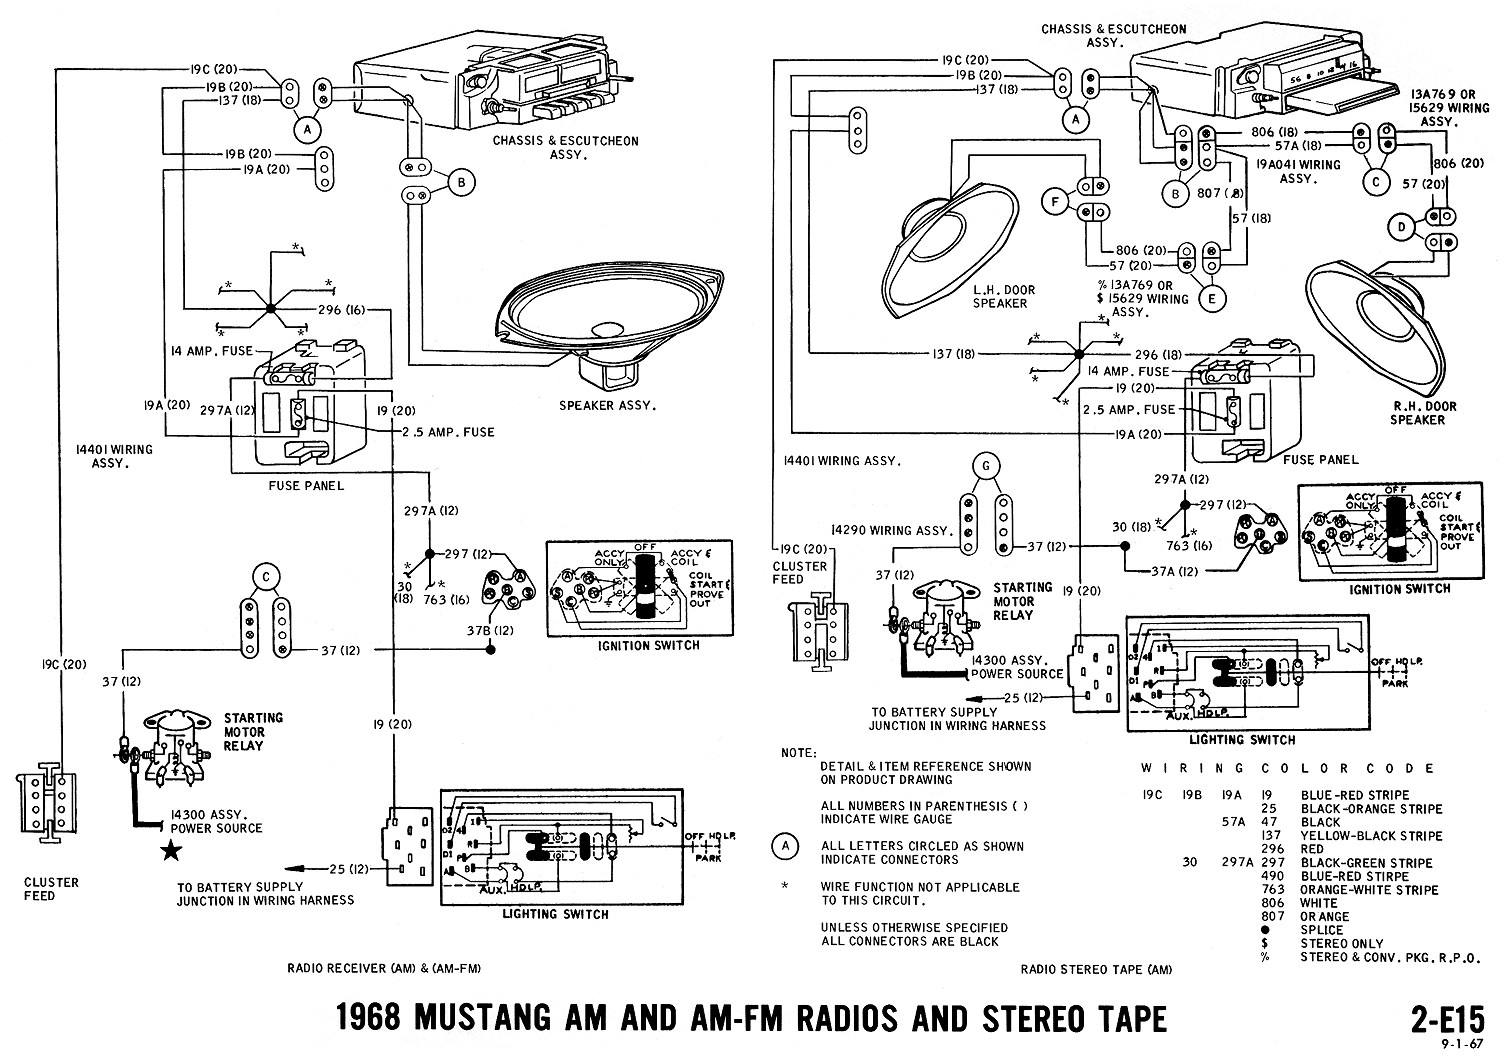 2010 camaro stereo wiring diagram auto electrical wiring. Black Bedroom Furniture Sets. Home Design Ideas